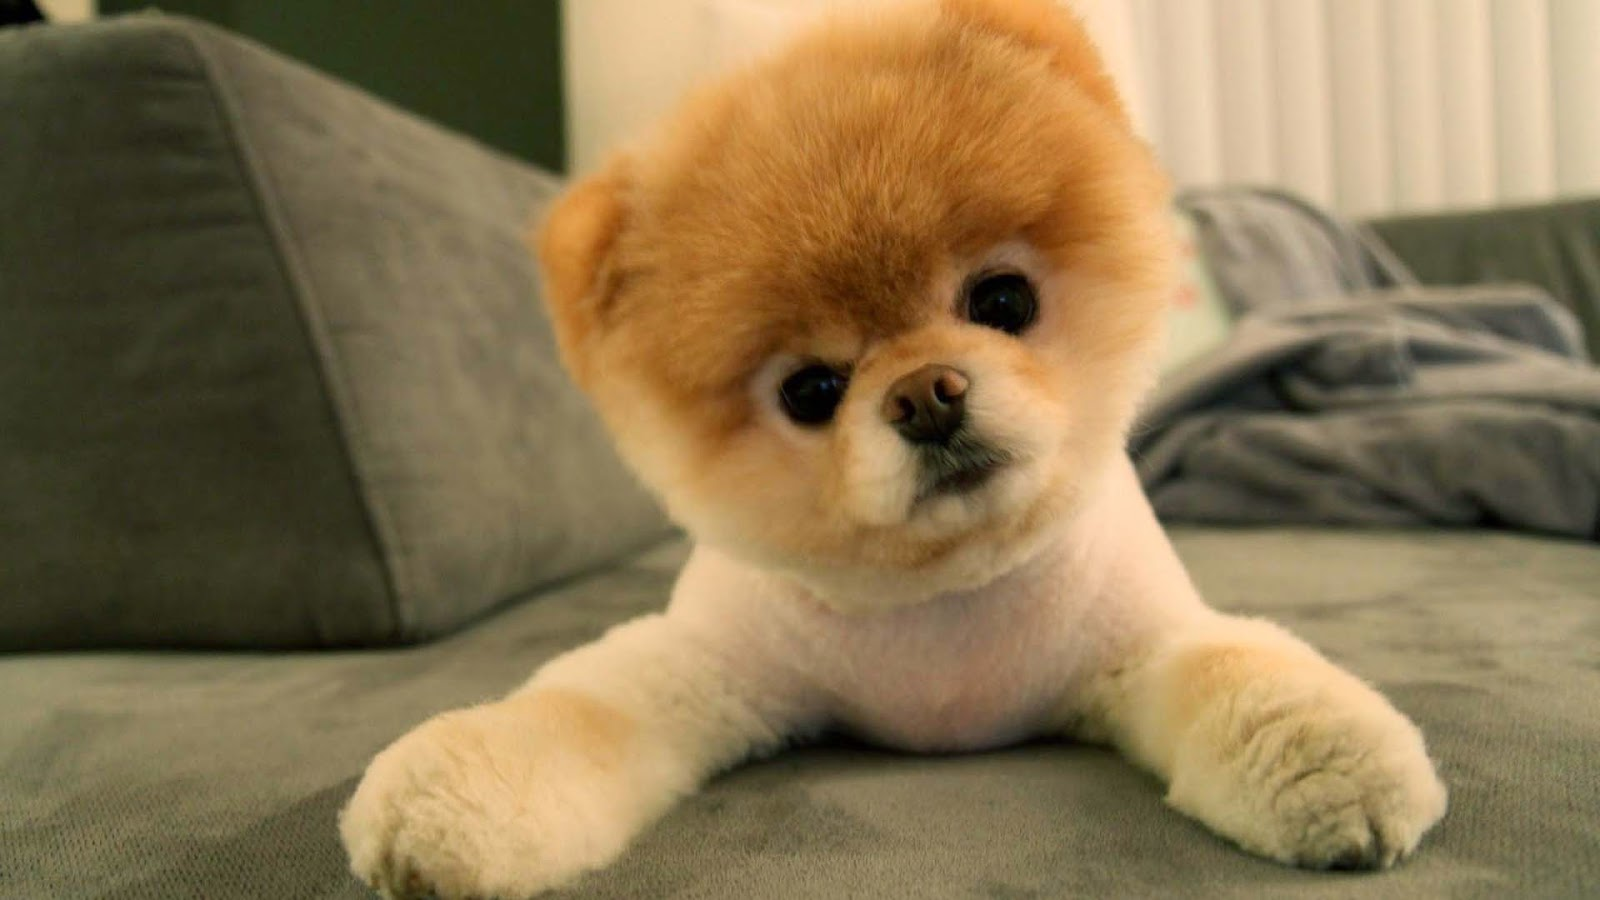 cute pomeranian puppies wallpaper image | free hd wallpaper